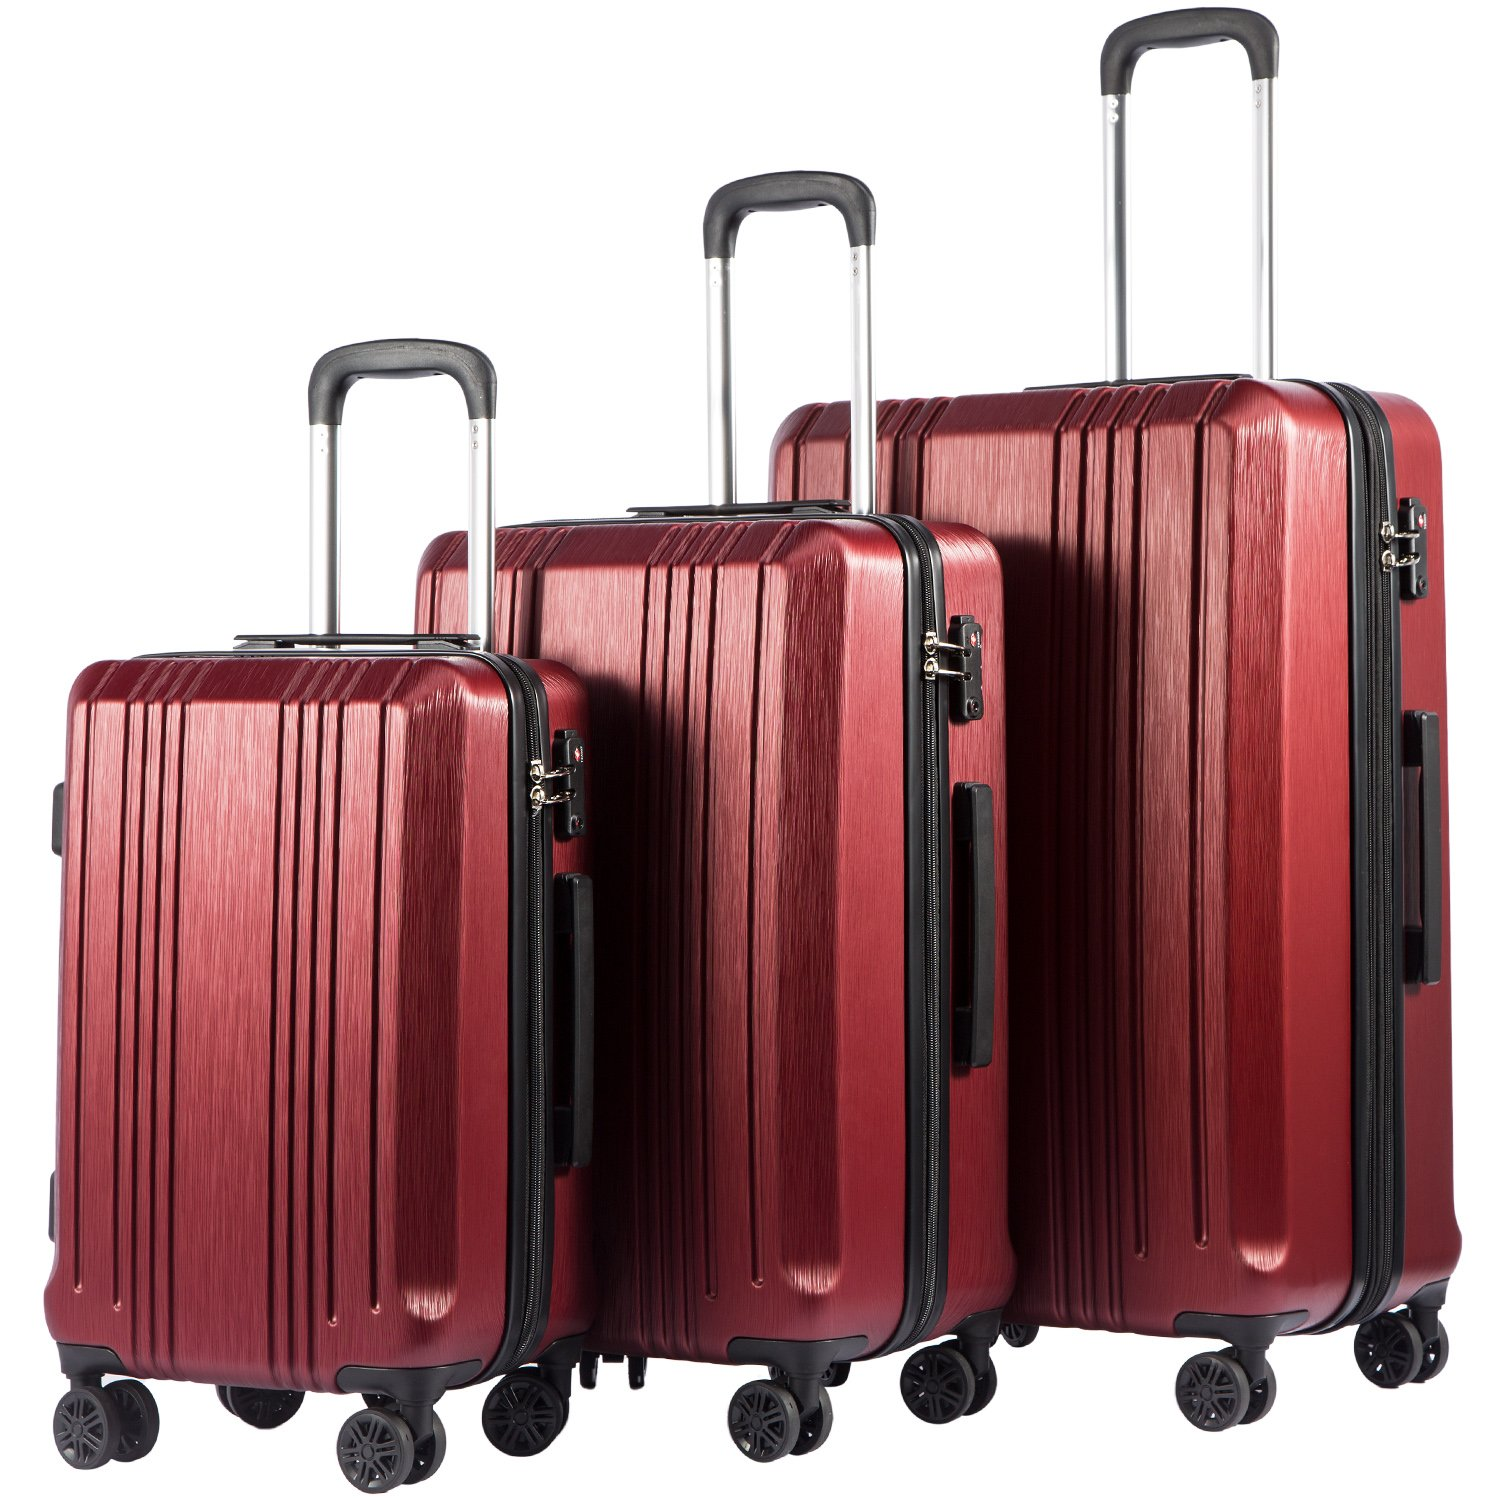 Coolife Luggage Expandable Suitcase PC+ABS with TSA Lock Spinner 20in24in28in (Wine red, 3 Piece Set) product image